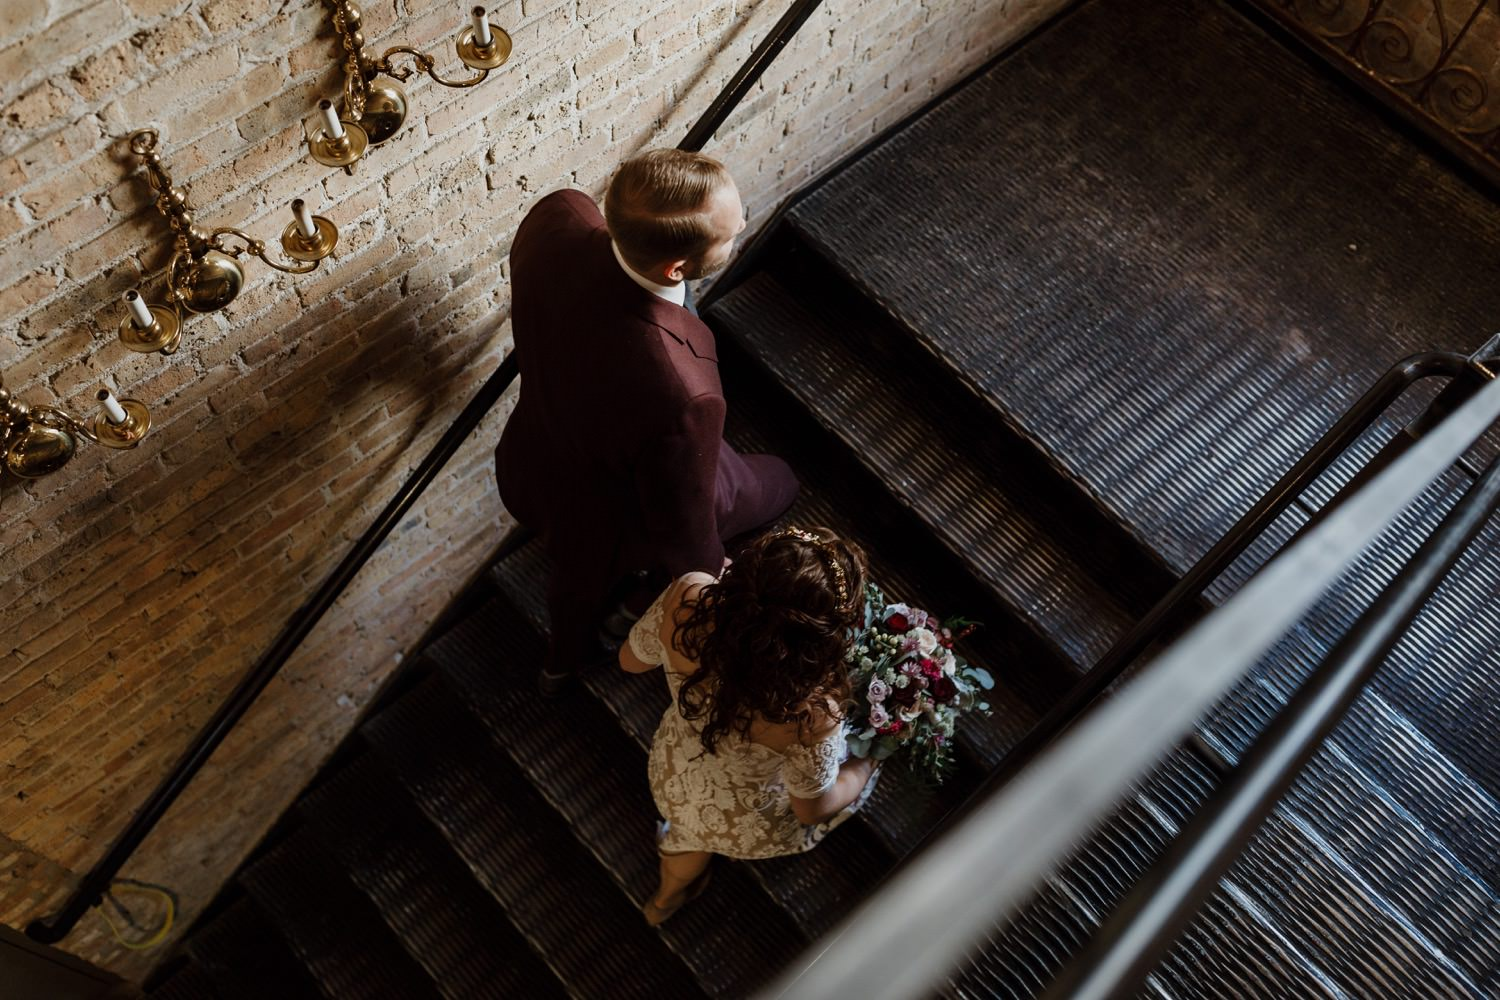 Bride and groom walk up the stairs inside the salvage one. Taken during the wedding day in December.